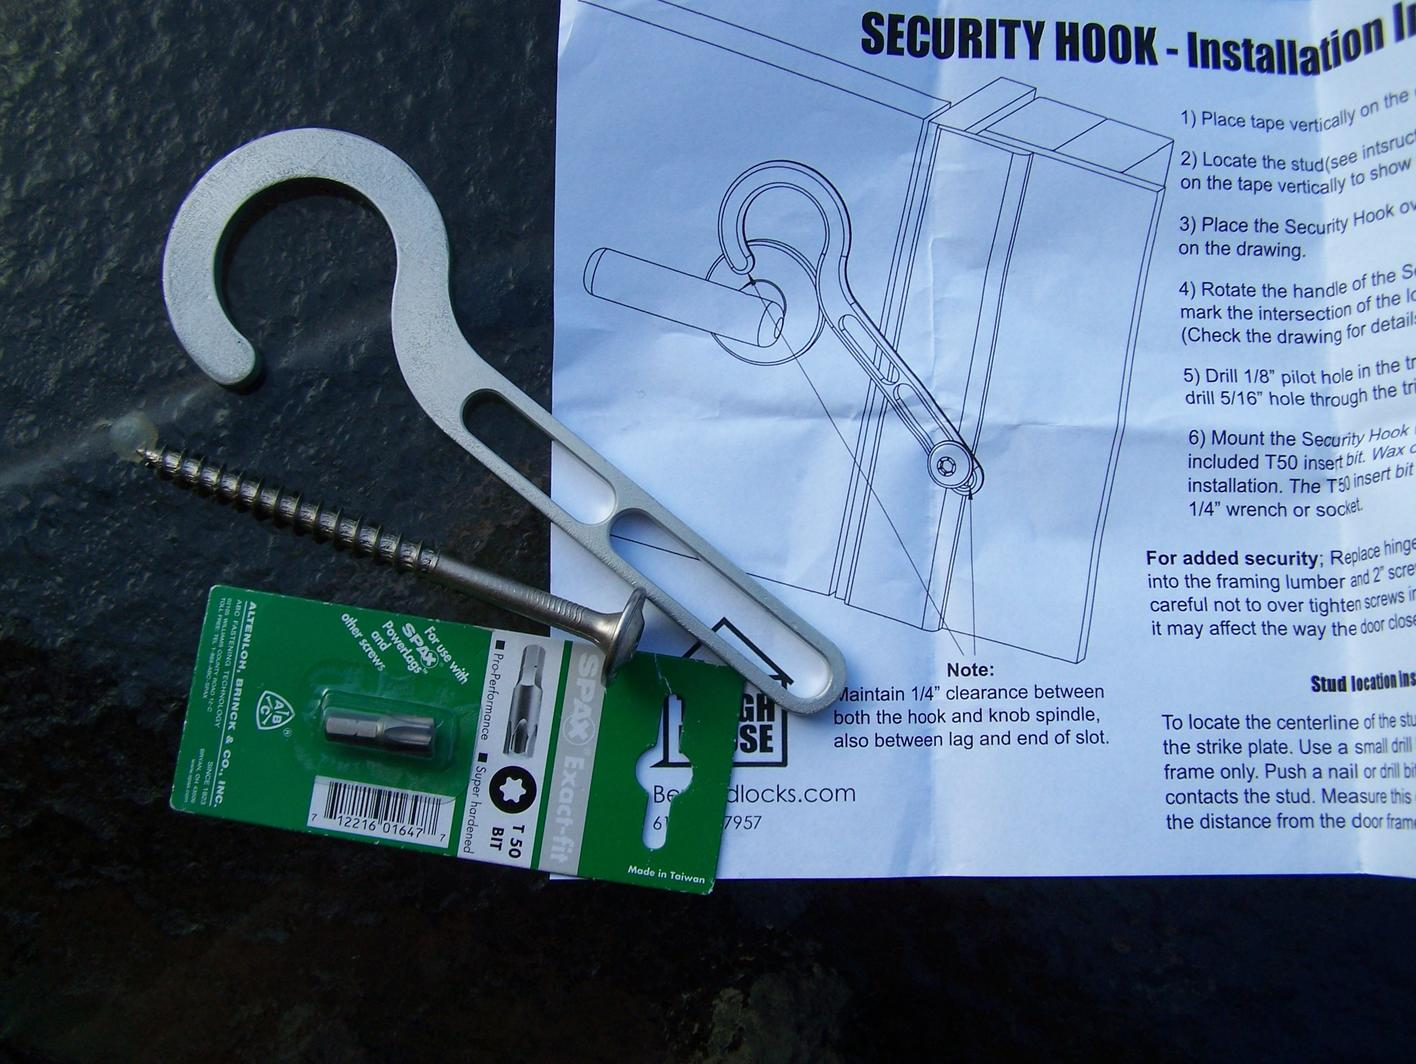 Security hook up clearance